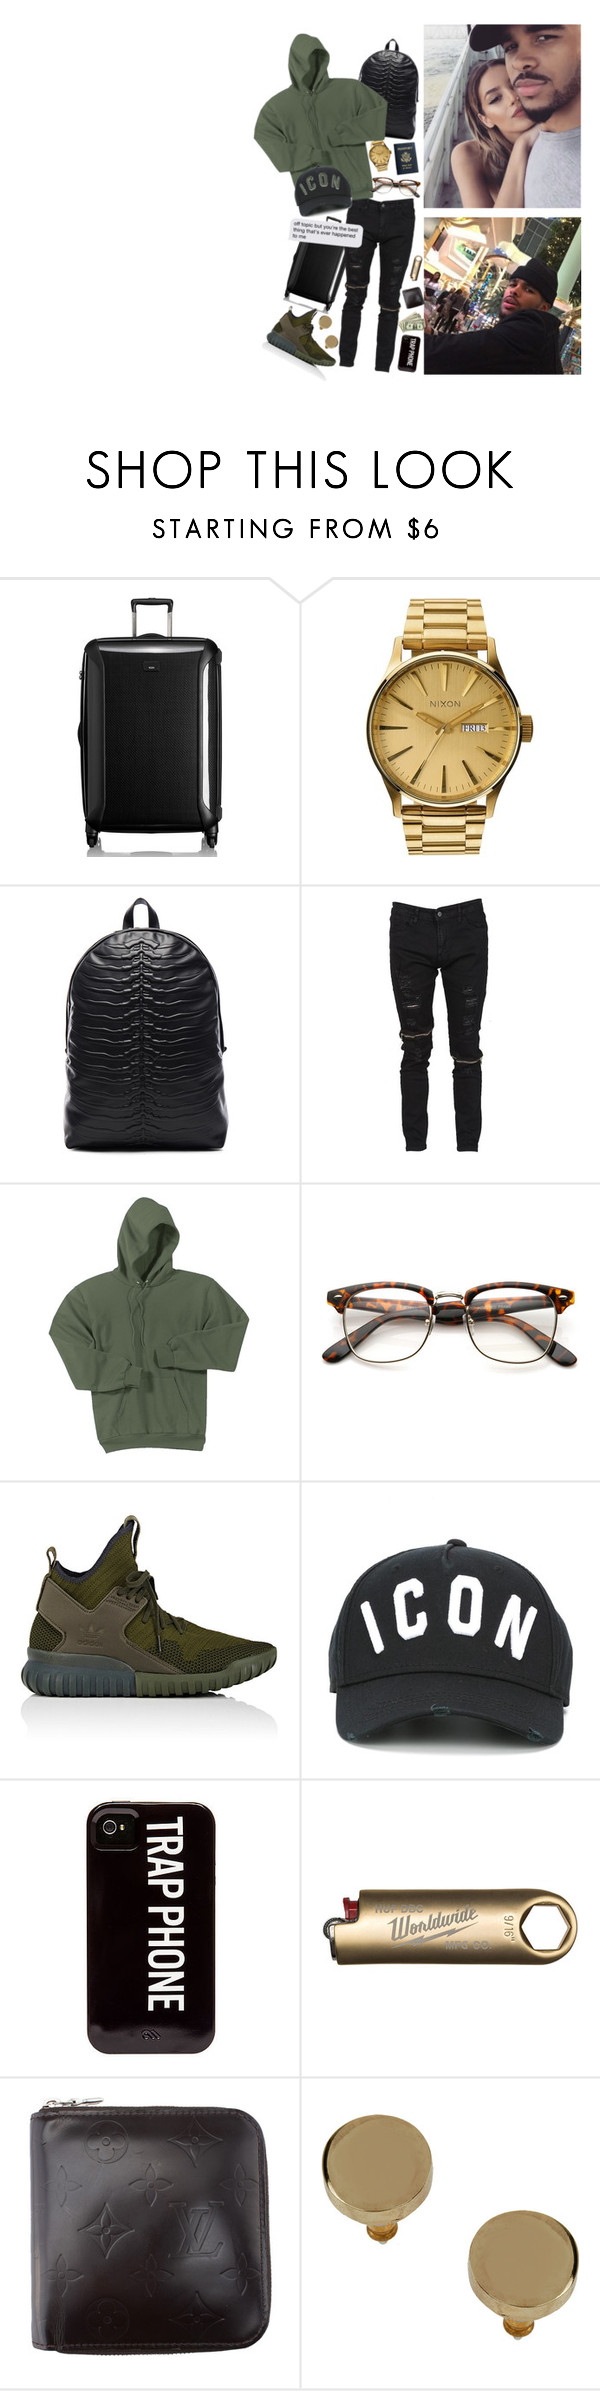 """""""I got her, in the palm of, my hand, she knows I love her, I got her, thought I lost her, again (8)"""" by harveysantiago ❤ liked on Polyvore featuring Tumi, Nixon, Alexander McQueen, adidas, Dsquared2, HUF, Topman, men's fashion and menswear"""